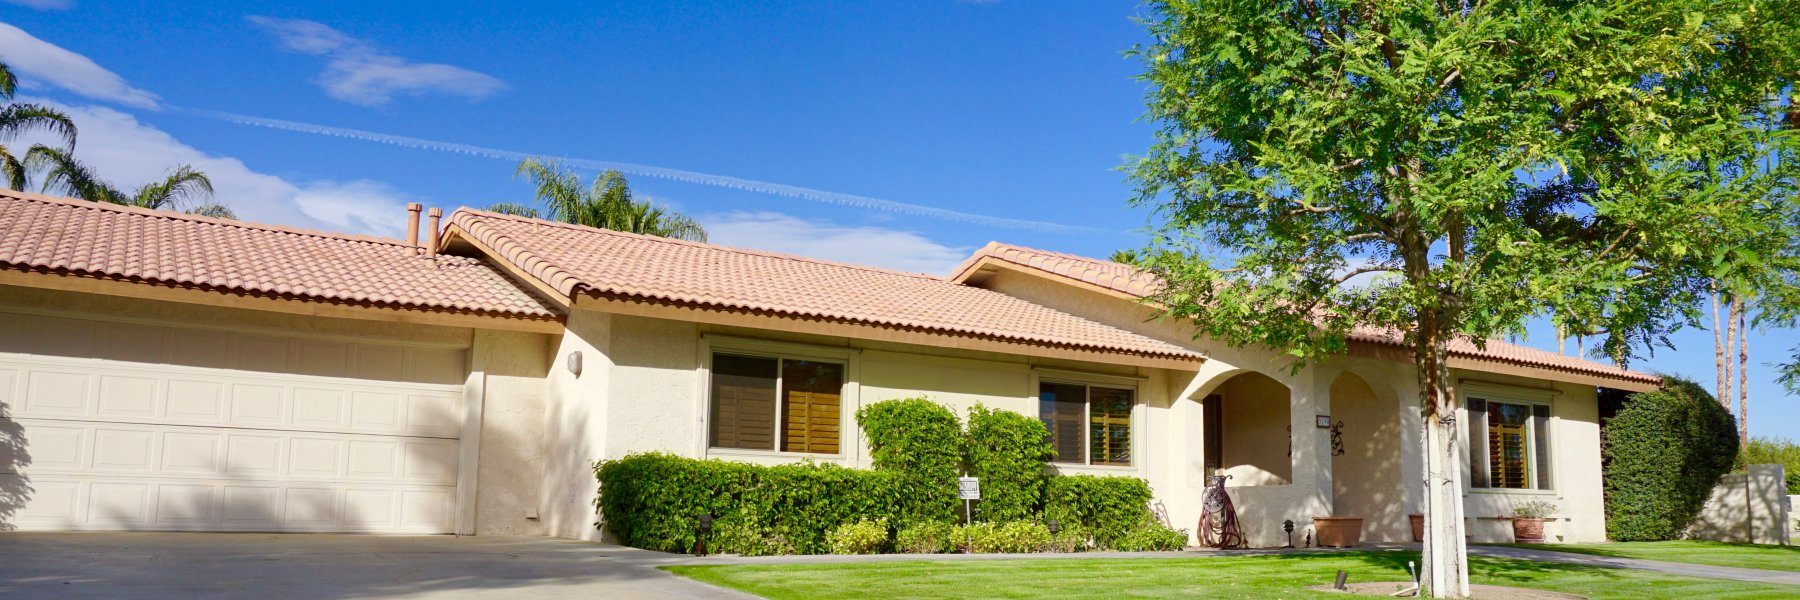 Los Compadres is a community of homes in Palm Springs California